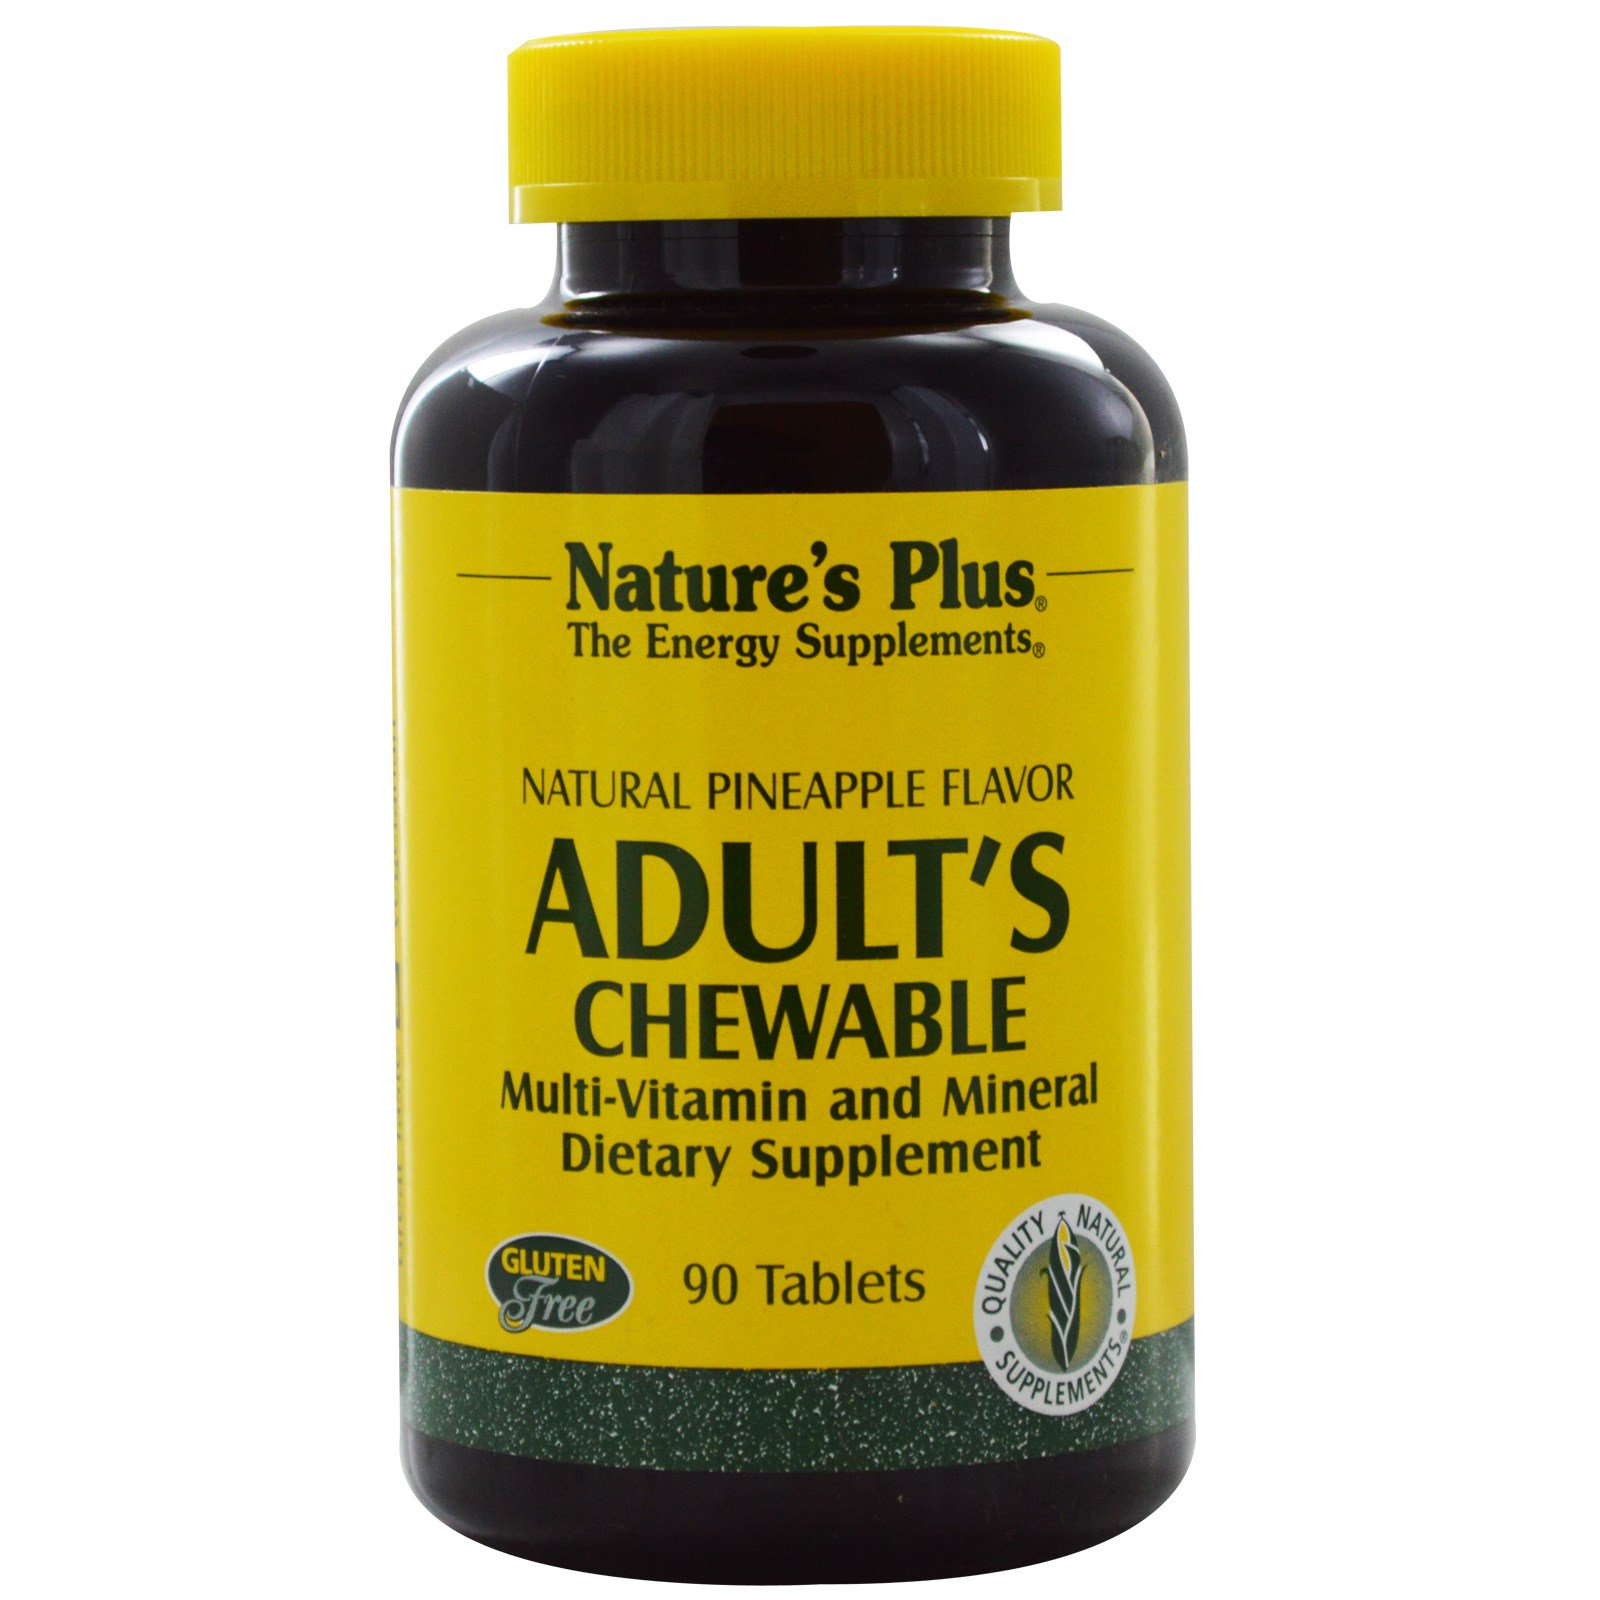 Adult chewable multivitamin